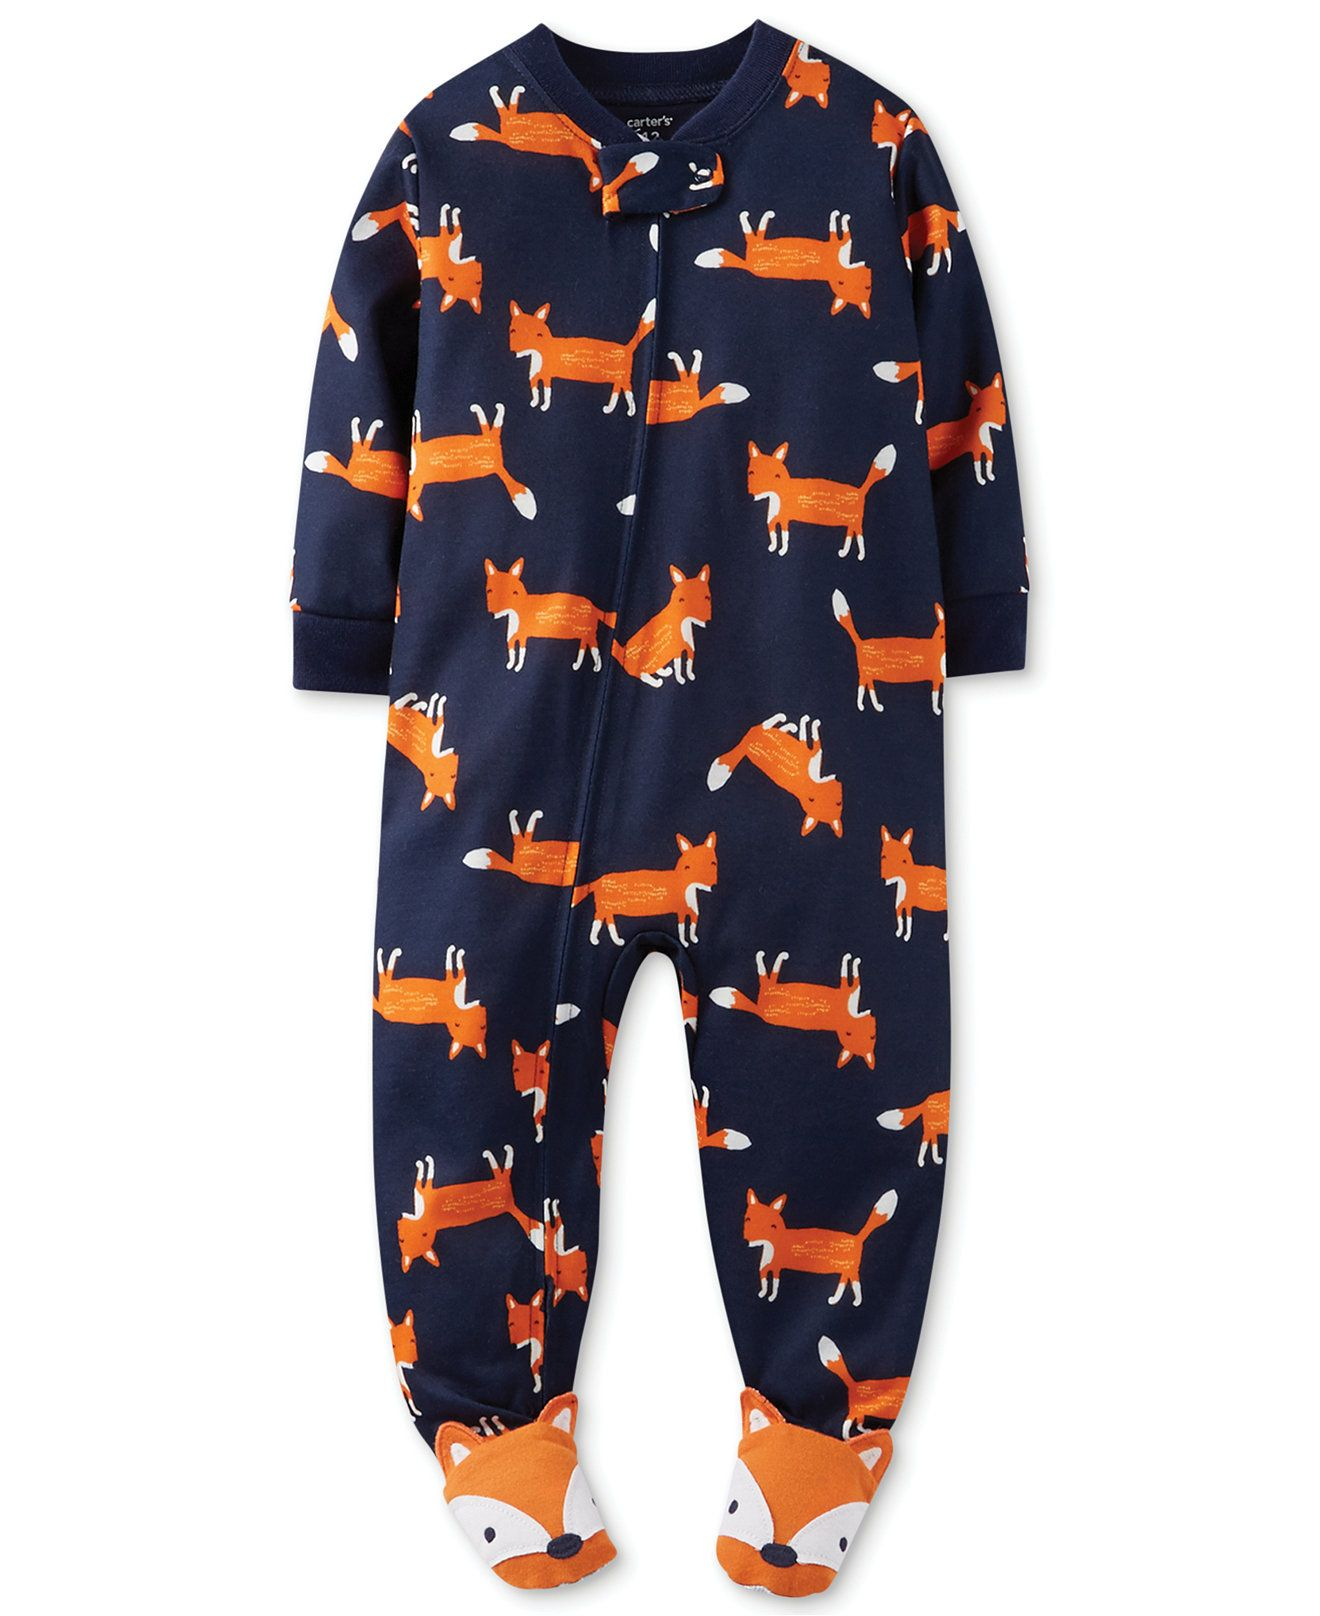 73cc15c40 Carter s Baby Boys  Fox Coverall Pajamas - Kids Baby Boy (0-24 ...